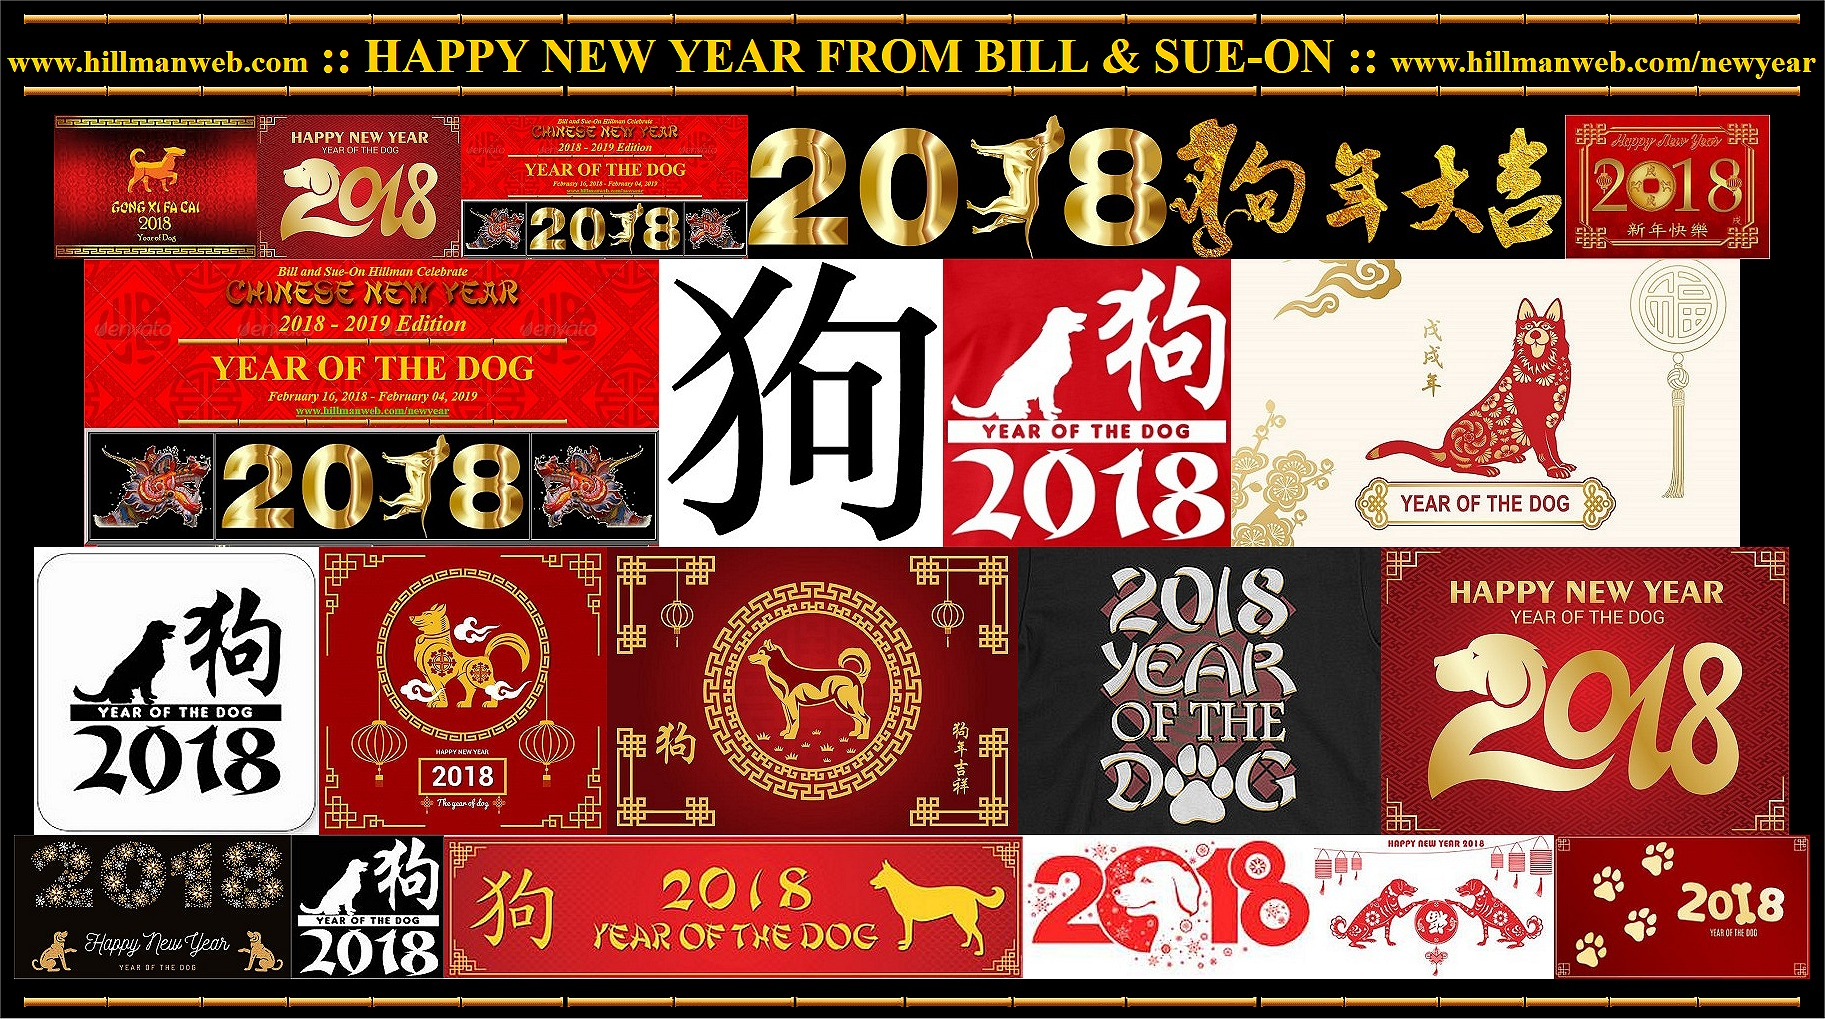 click to see full size preview collages visit our year of the dog commemorative coins display wwwhillmanwebcomnewyeardogcoinshtml